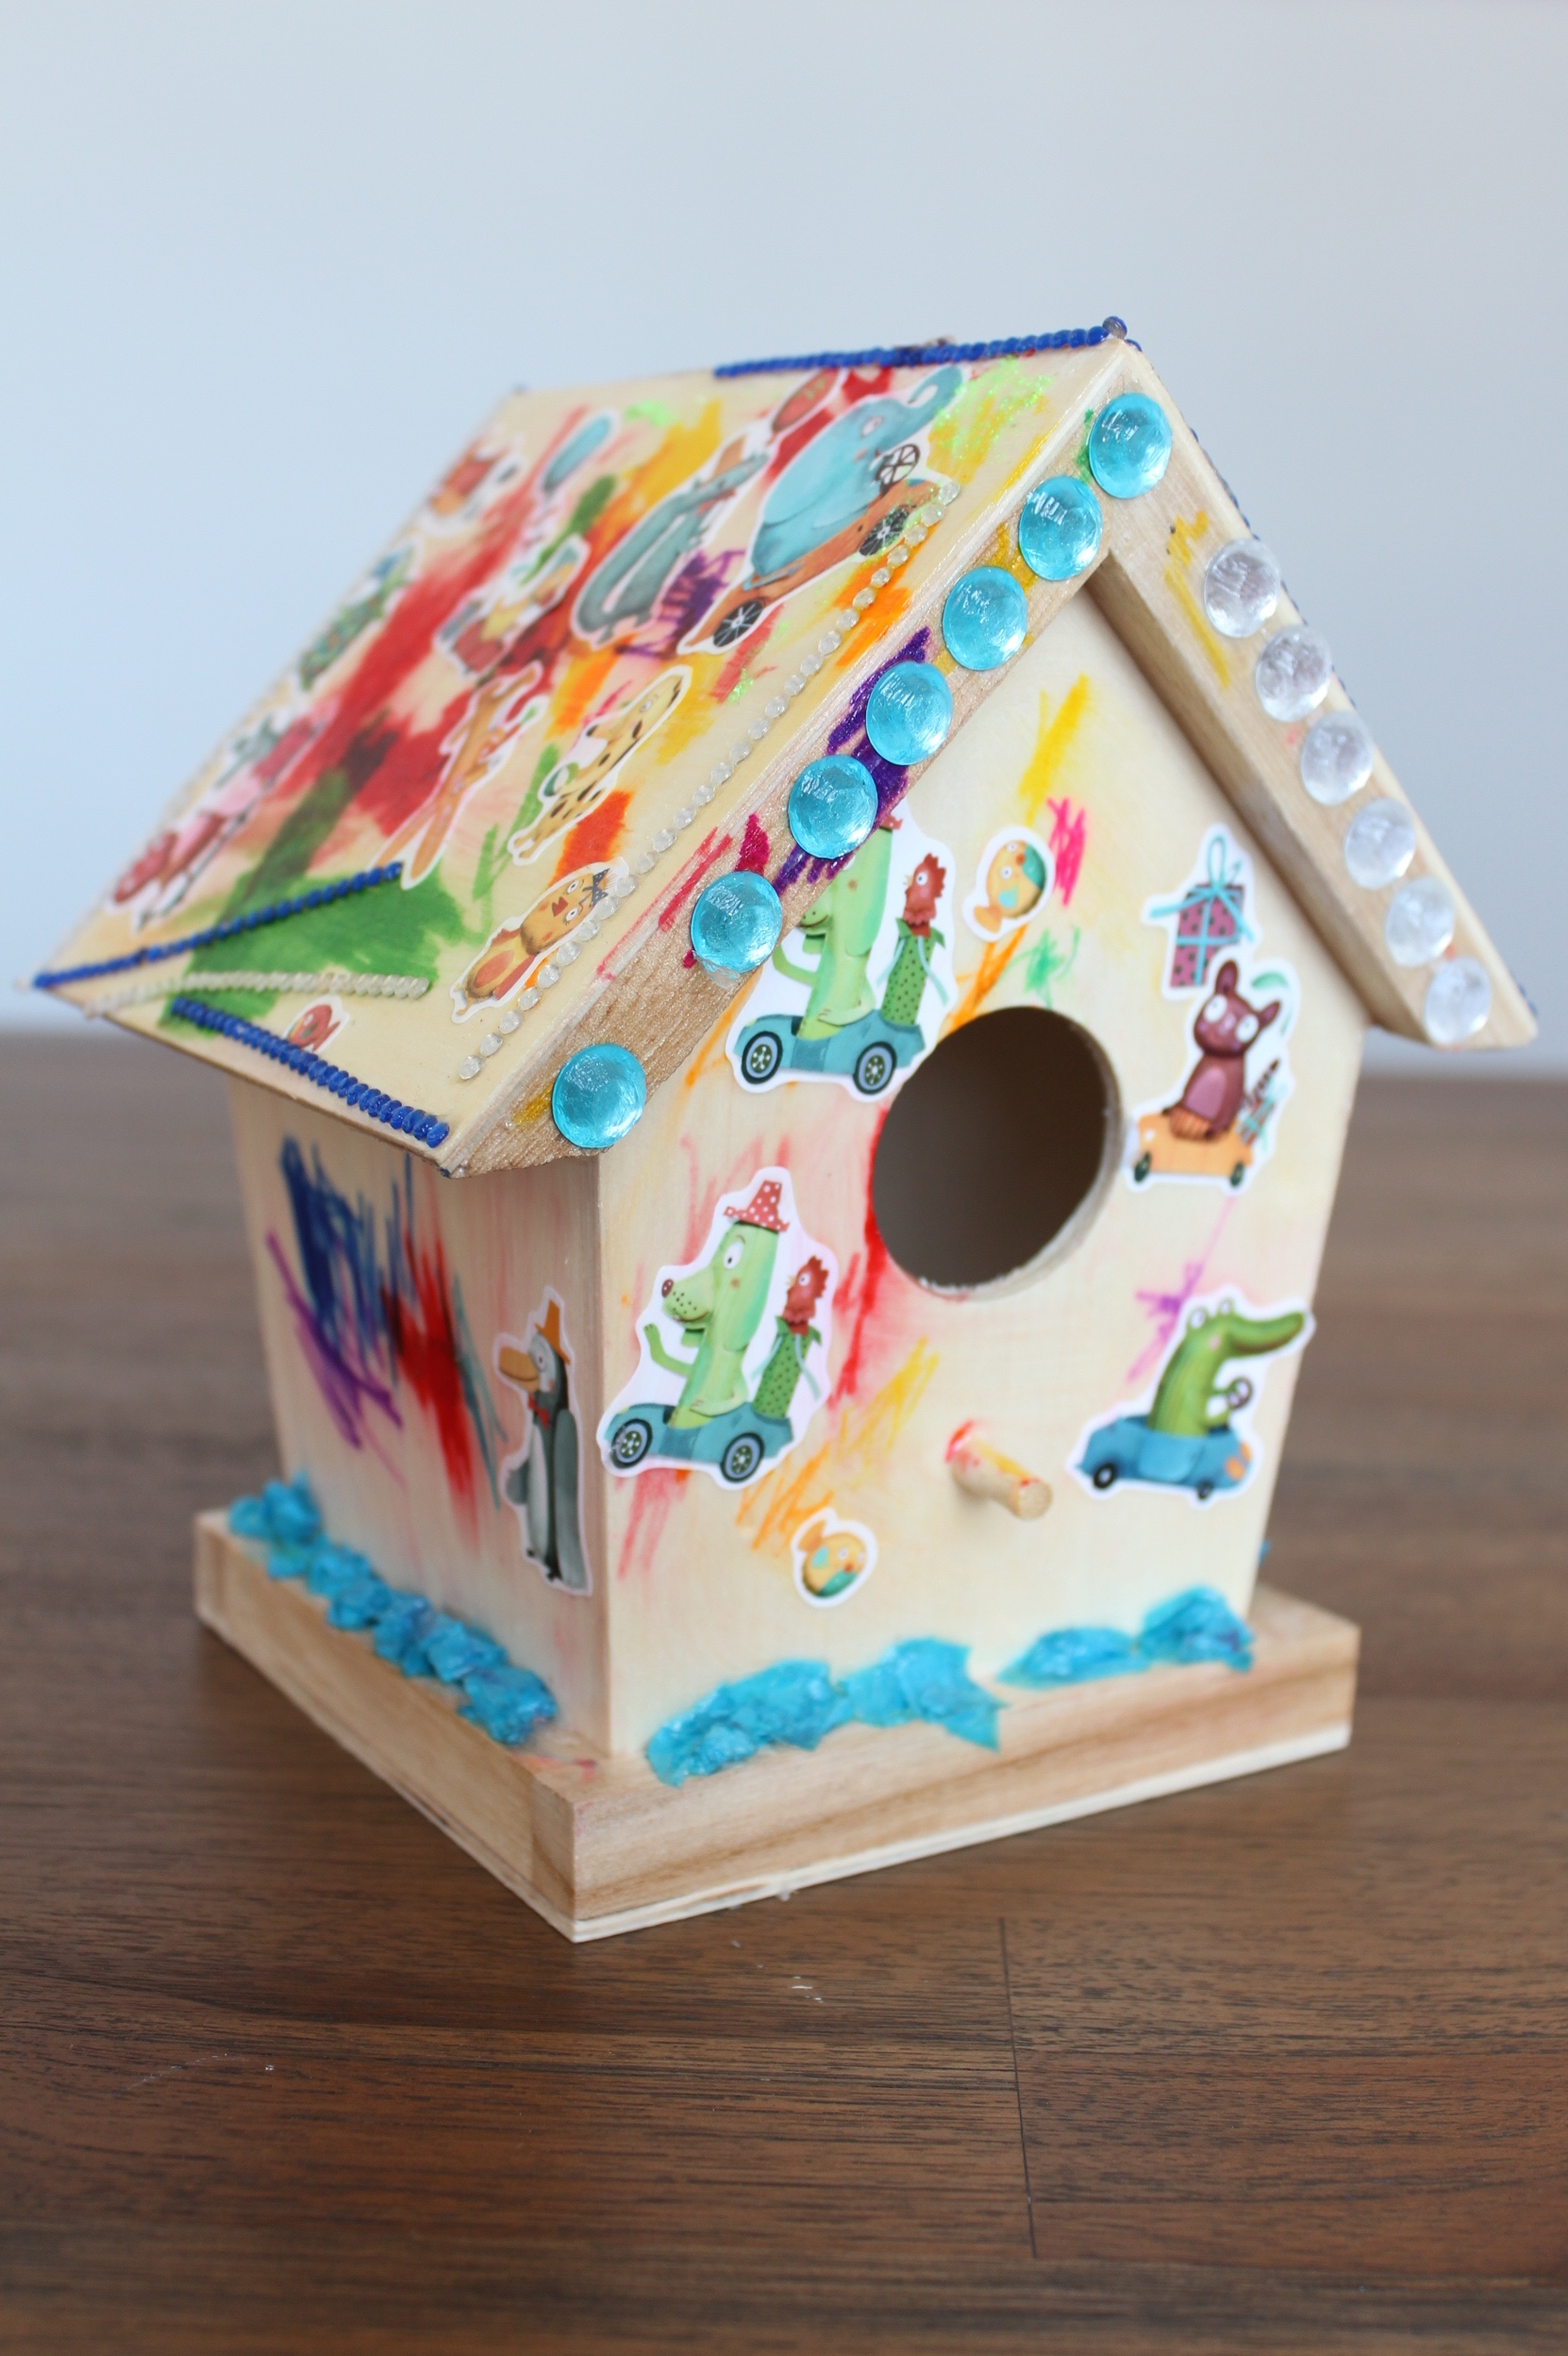 Birdhouse decorated by Liam and Alec